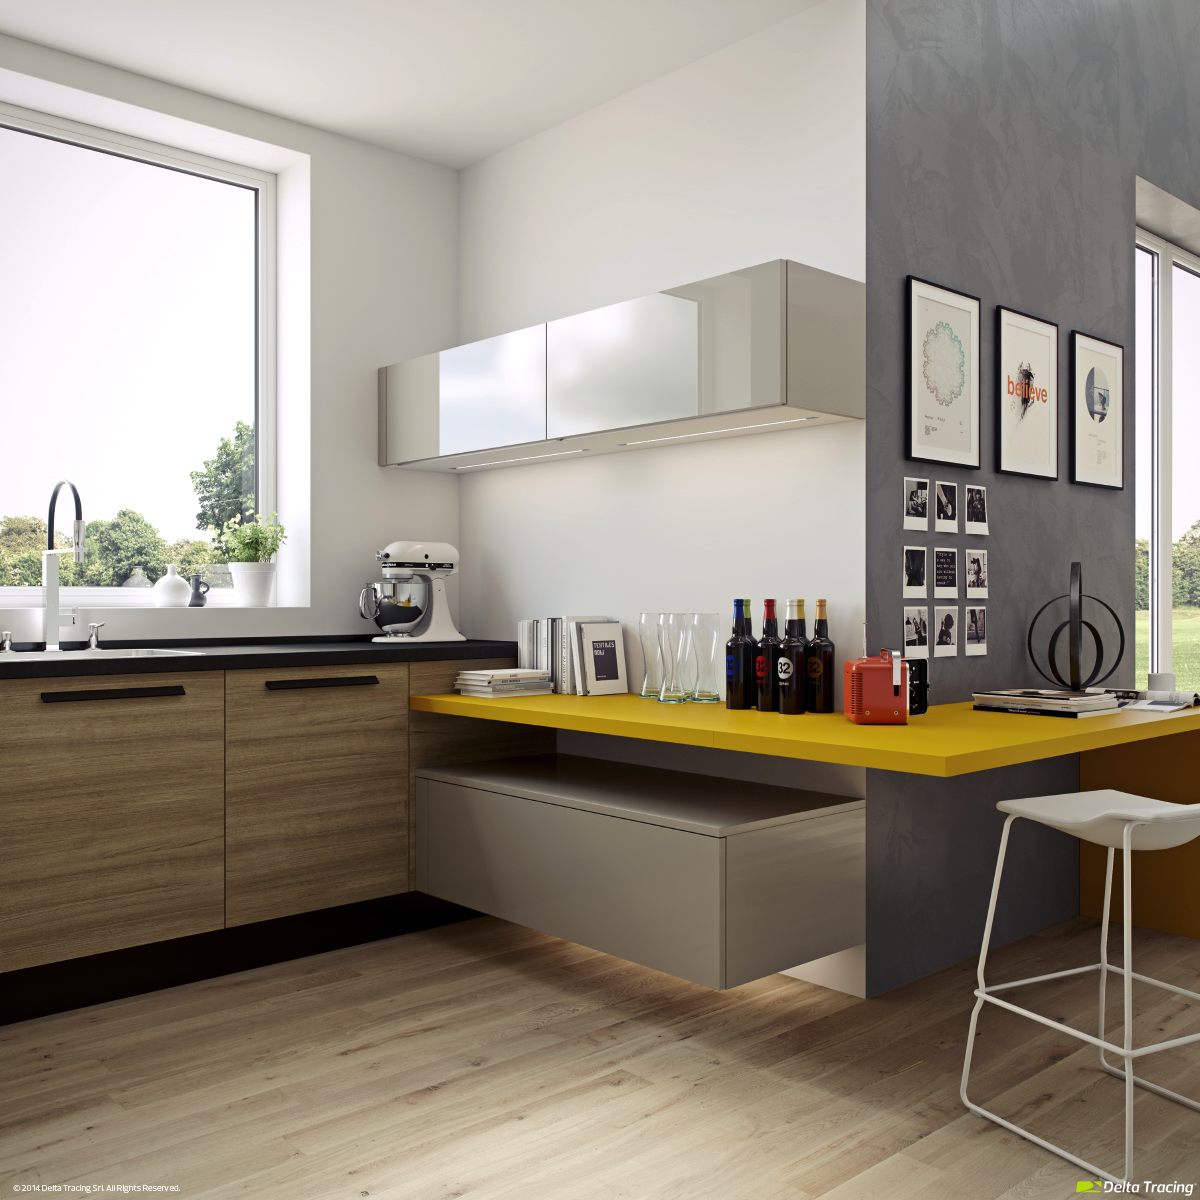 kitchen-countertops-in-yellow